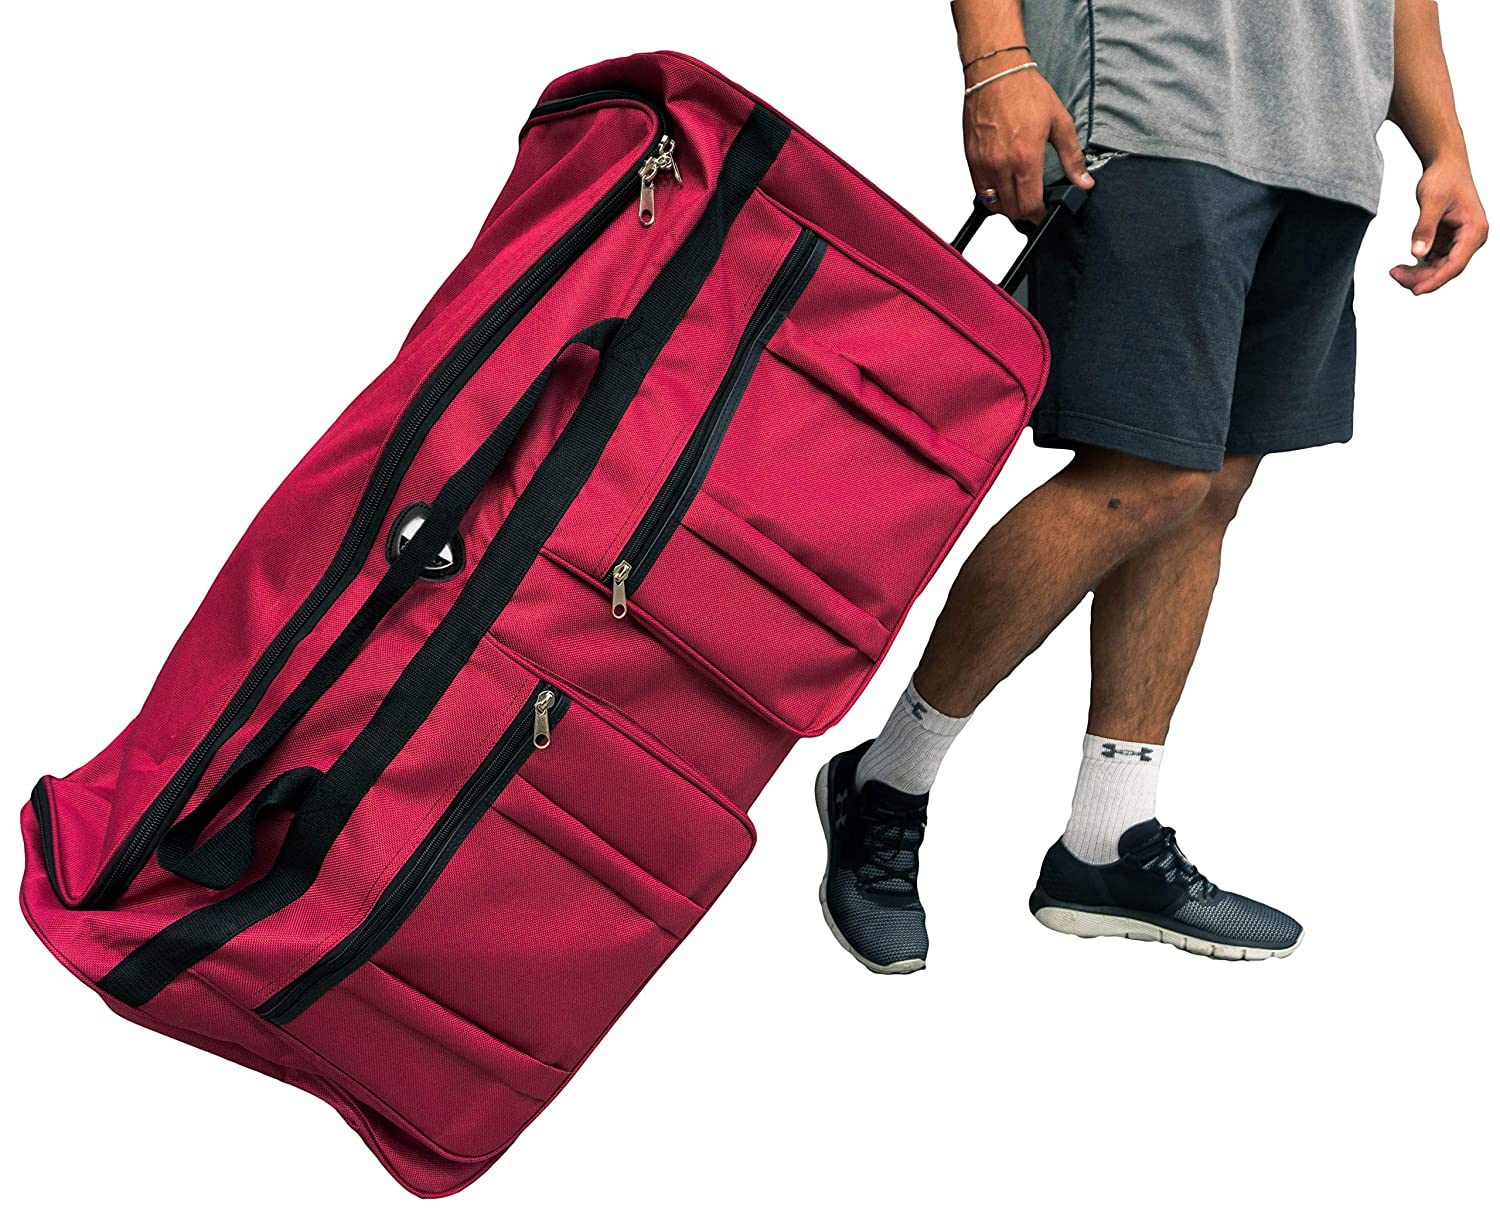 Gothamite 36-inch ICE USA Ro & Co Rolling Wheeled Bag Cargo Duffel Travel Oversize Hockey Sports Duffle 36, Red, XL